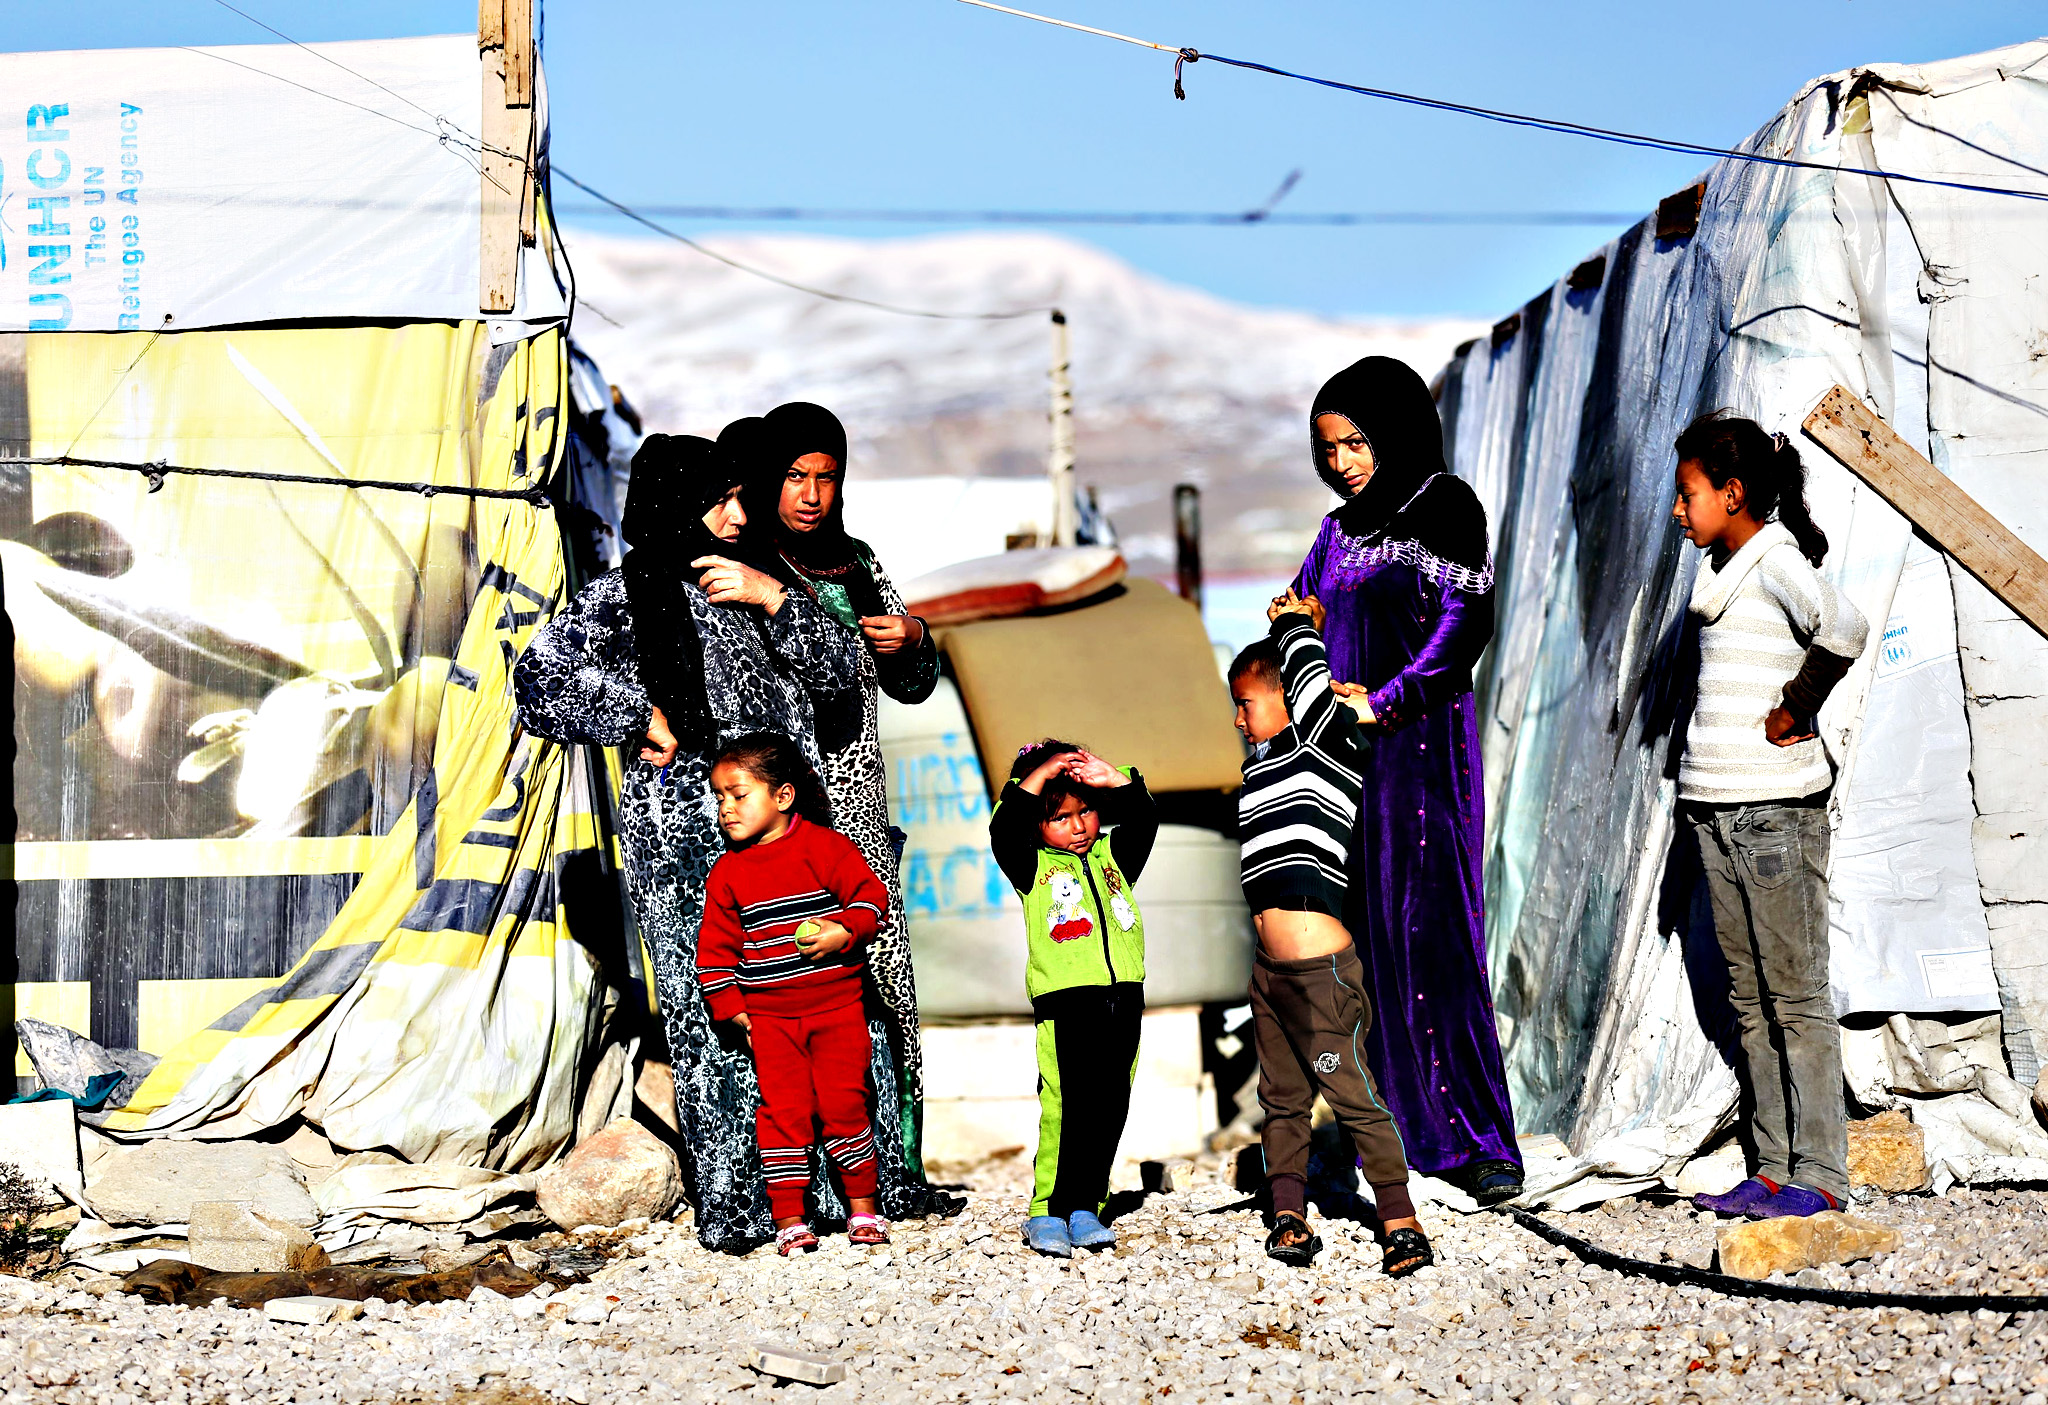 Syrian refugees look on during a visit by Secretary of State for International Development Justine Greening, during her visit to an Informal Tented Settlement occupied by Syrian refuges close to the Syrian boarder in Lebanon, to see how the UK's response and aid is helping the refugee crisis. PRESS ASSOCIATION Photo. Picture date: Friday January 15, 2016.